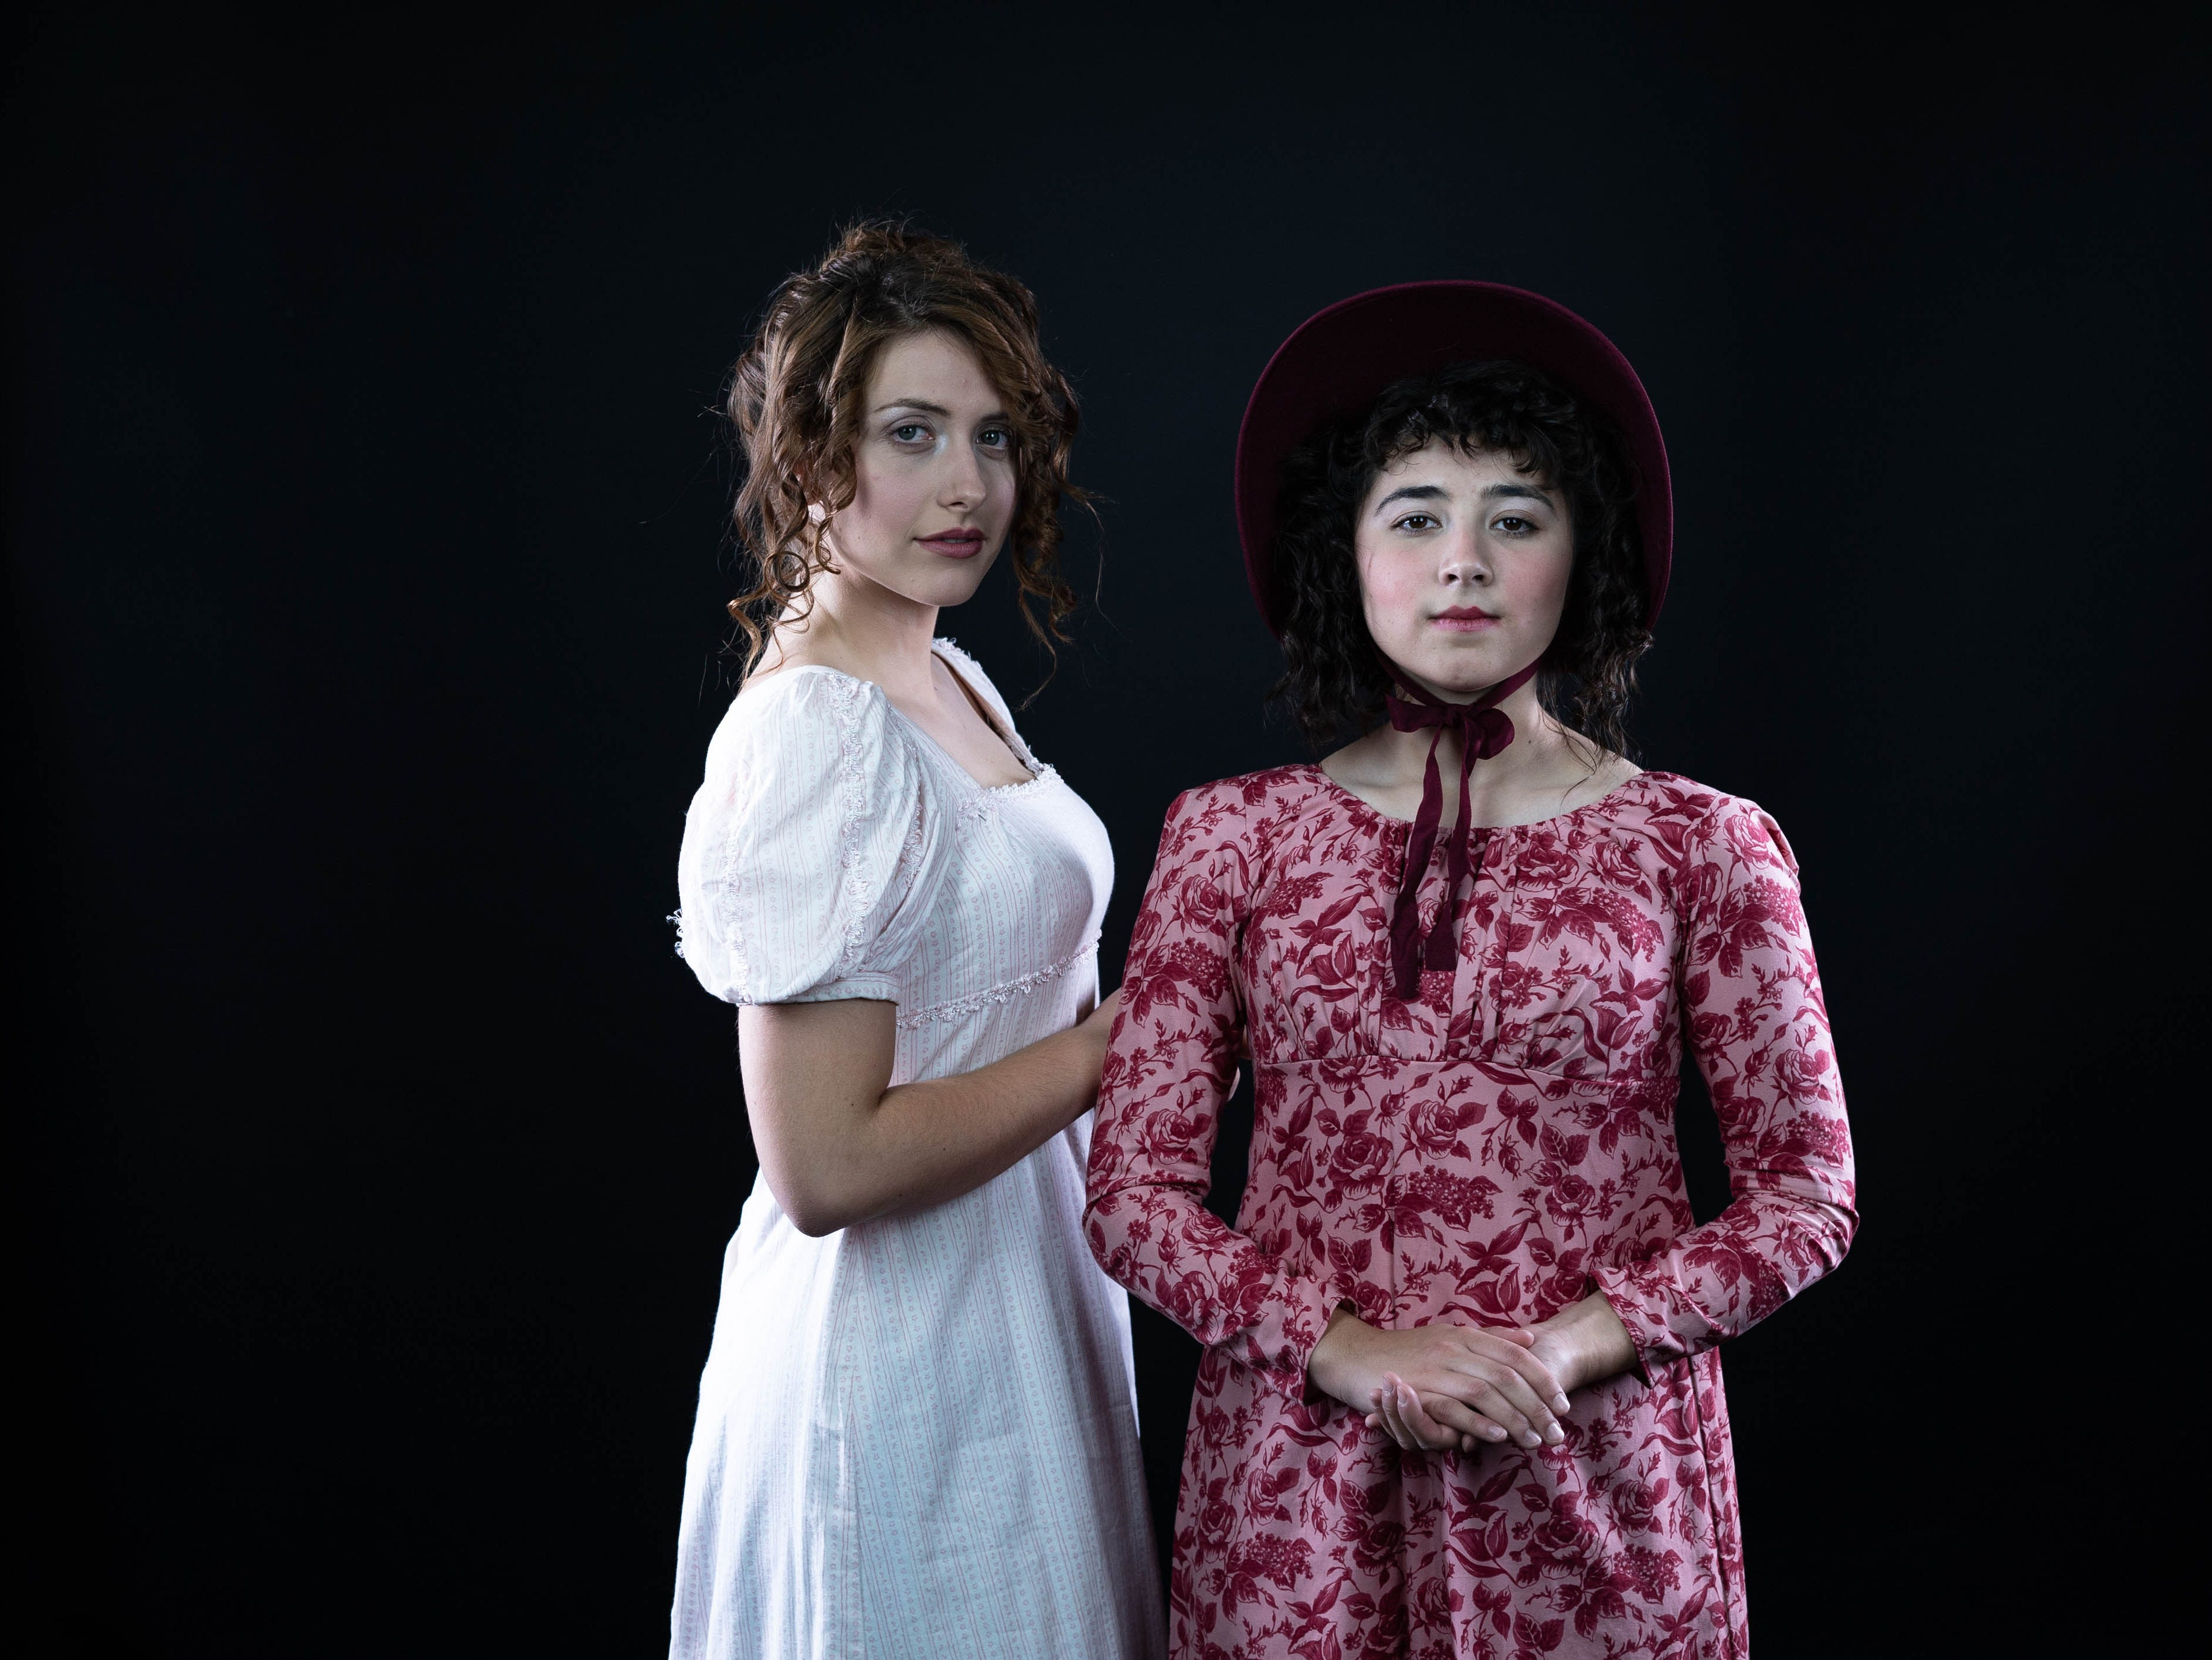 """""""Sense and Sensibility"""":Adapted from the Jane Austen novel, learn what happens when sisters Elinor and Marianne find themselves without a fortune — and without a man — against the backdrop of flawed 18th century English society, 10:30 a.m. Nov. 8, 7:30 p.m. Nov. 9-10 and 16-17, 2:30 p.m. Nov. 18, Psalm Performing Arts Center, 5000 Deer Park Drive SE, Salem. $13 for adults, $11 for students, Corban staff and seniors, $8 for children 10 and under. inside.corban.edu/theatre/events."""